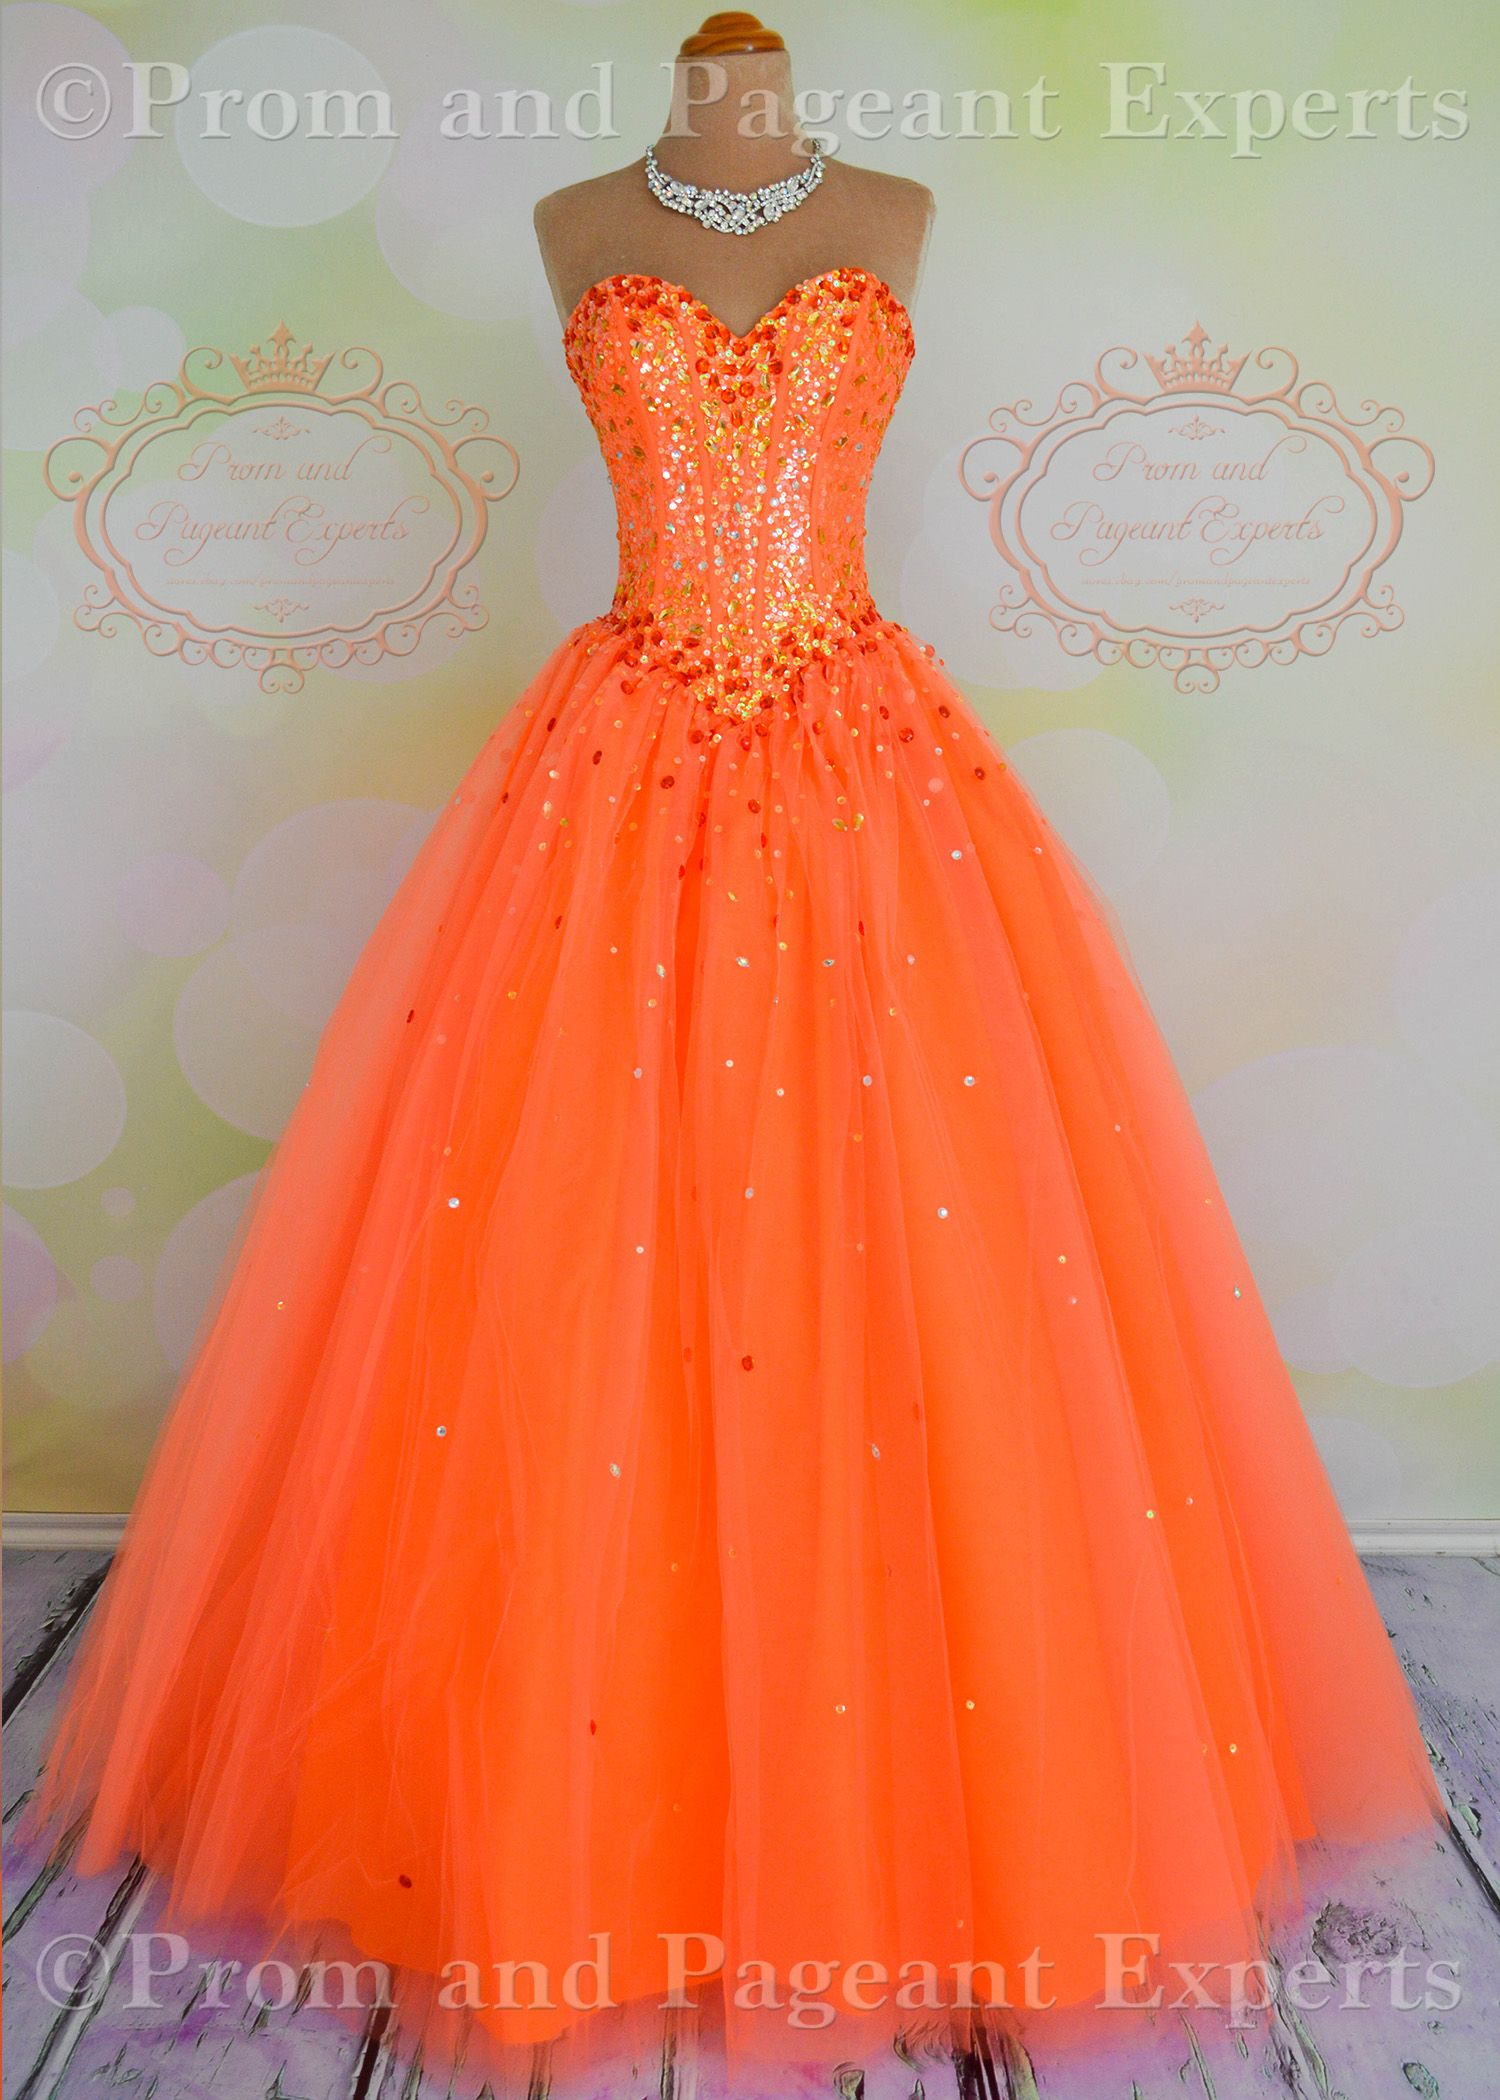 Mori lee neon orange prom ball gown dress quince laceup corset back